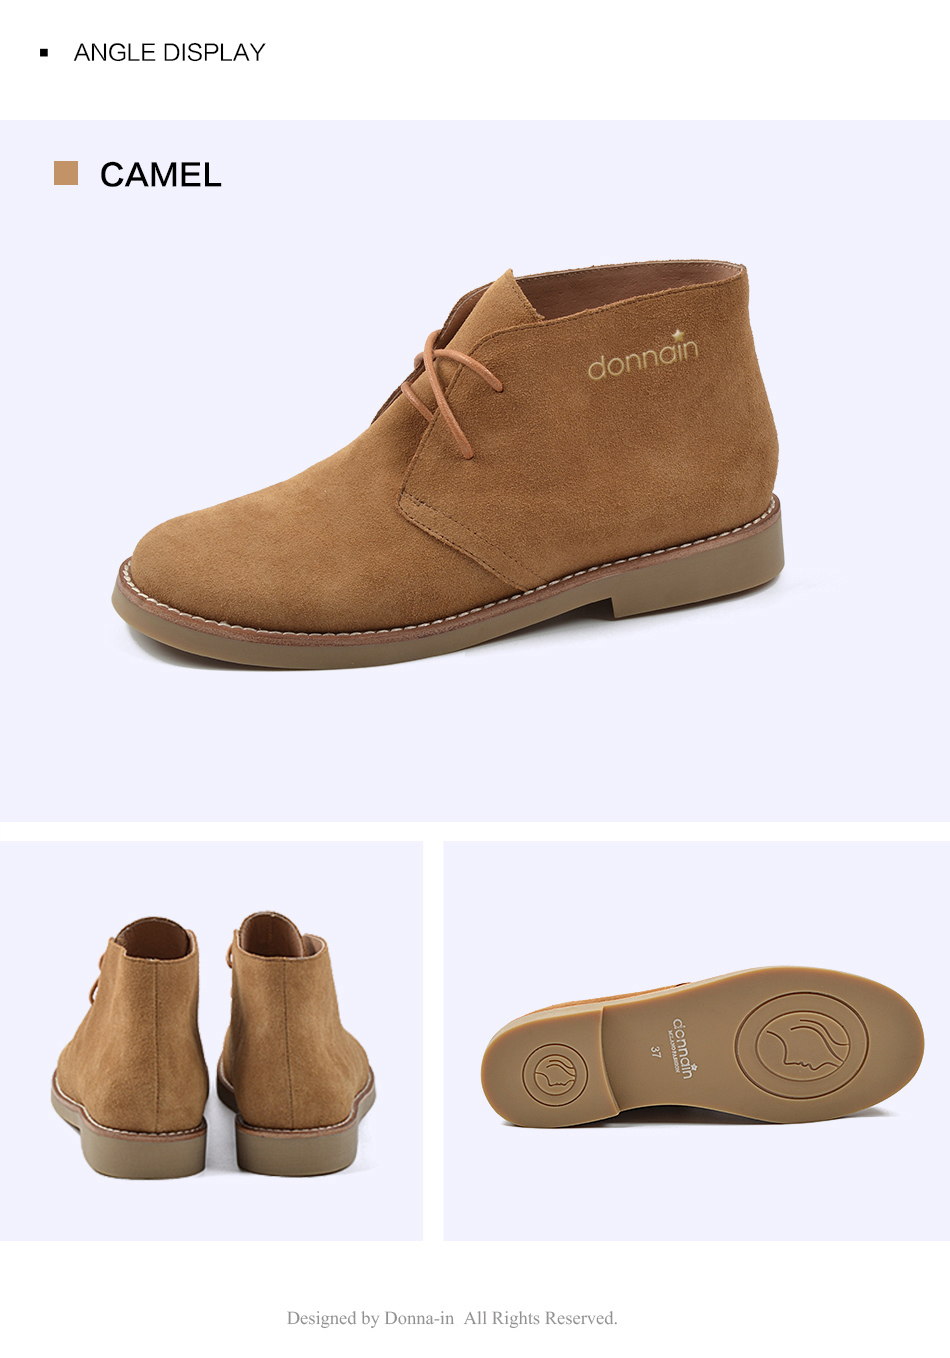 Donna-in Fashion Martin Boots Women Adult Autumn Spring 2019 Ankle Boots Suede Leather Lace-up Casual Low Heel Shoes Women (19)